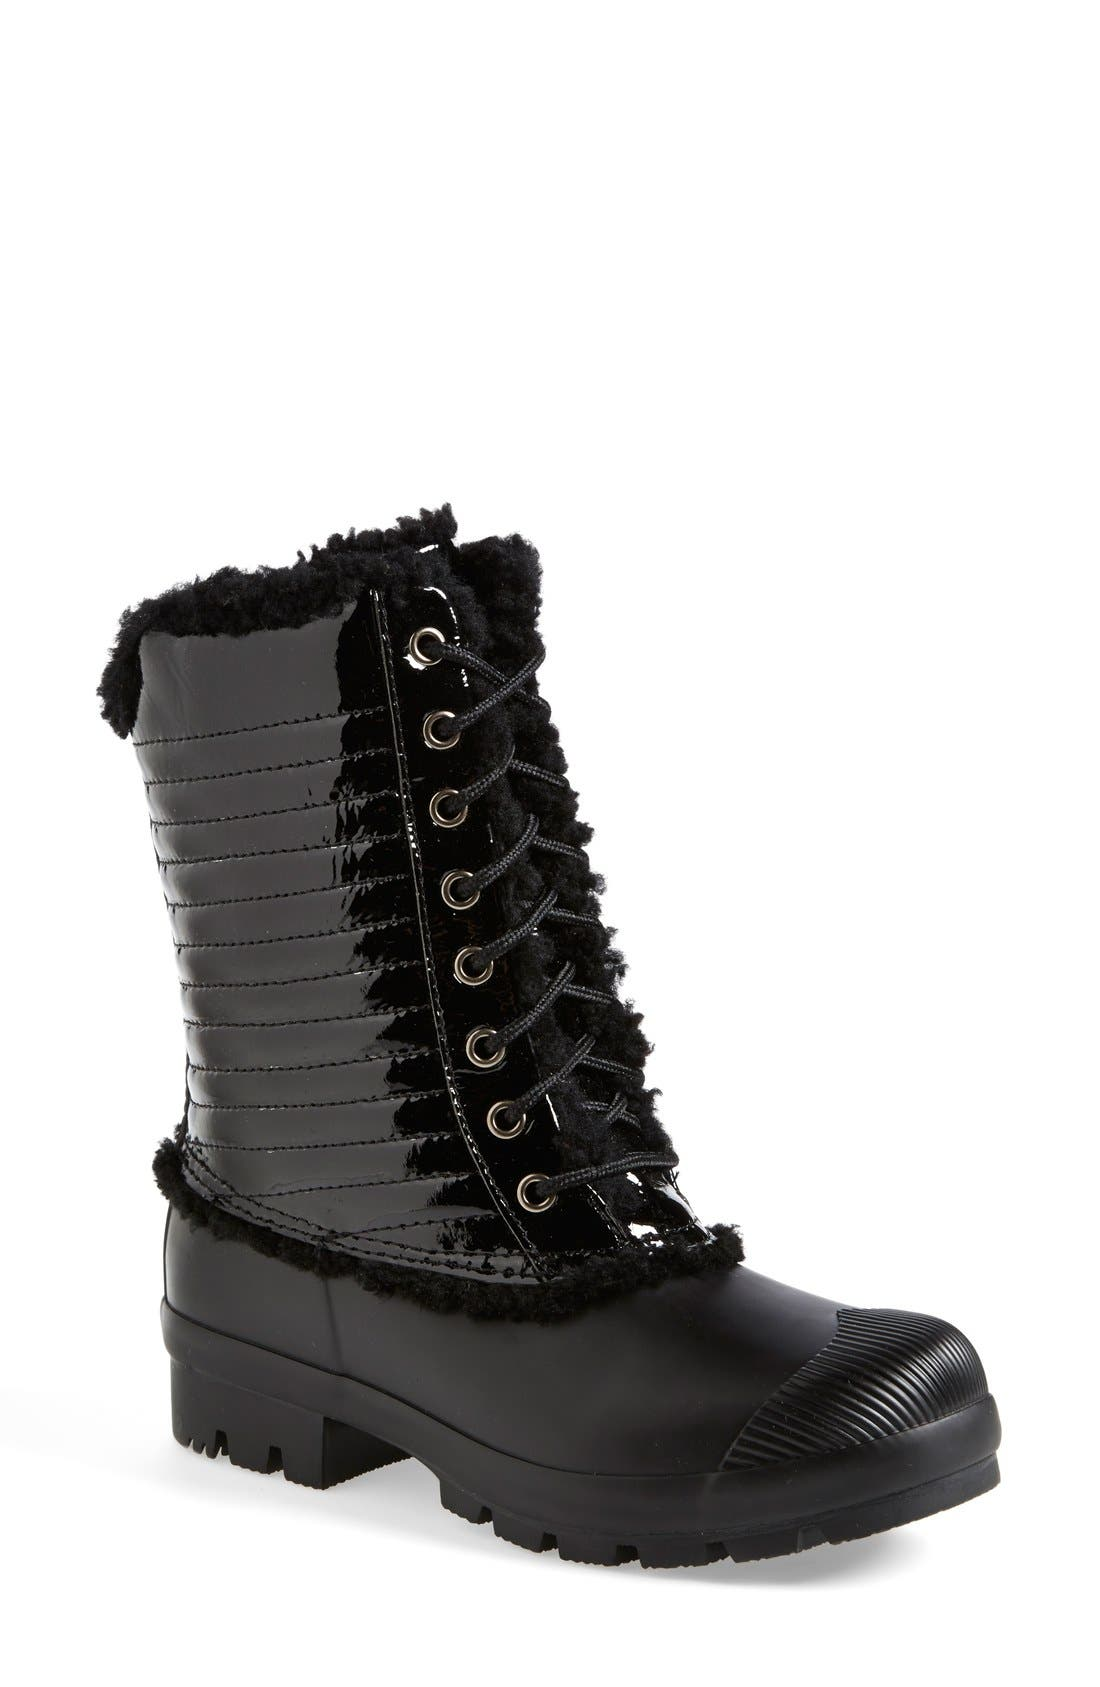 Main Image - Hunter Original Genuine Shearling & Patent Leather Lace-Up Rain Boot (Women)